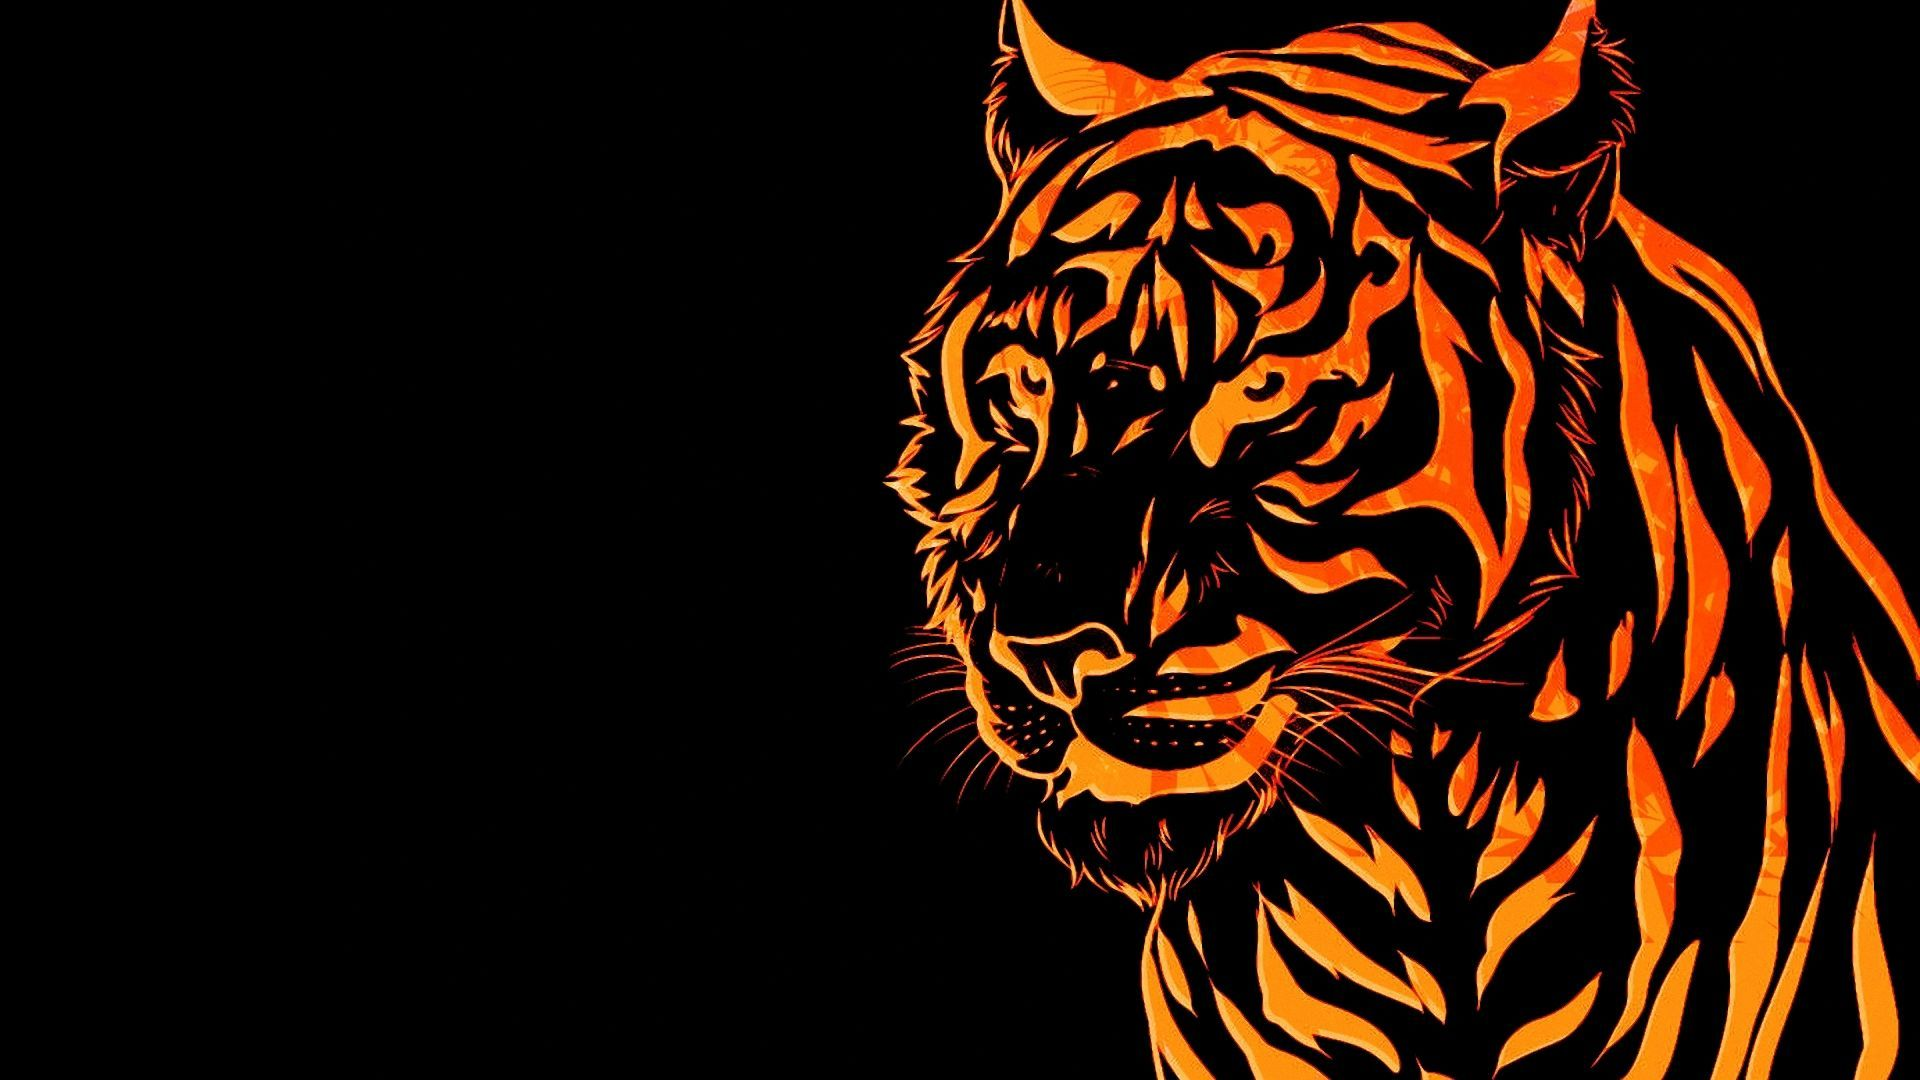 Abstract Tiger Wallpaper Free Download Hd Hd Wallpapers For Pc Wallpaper Pc Background Images Hd